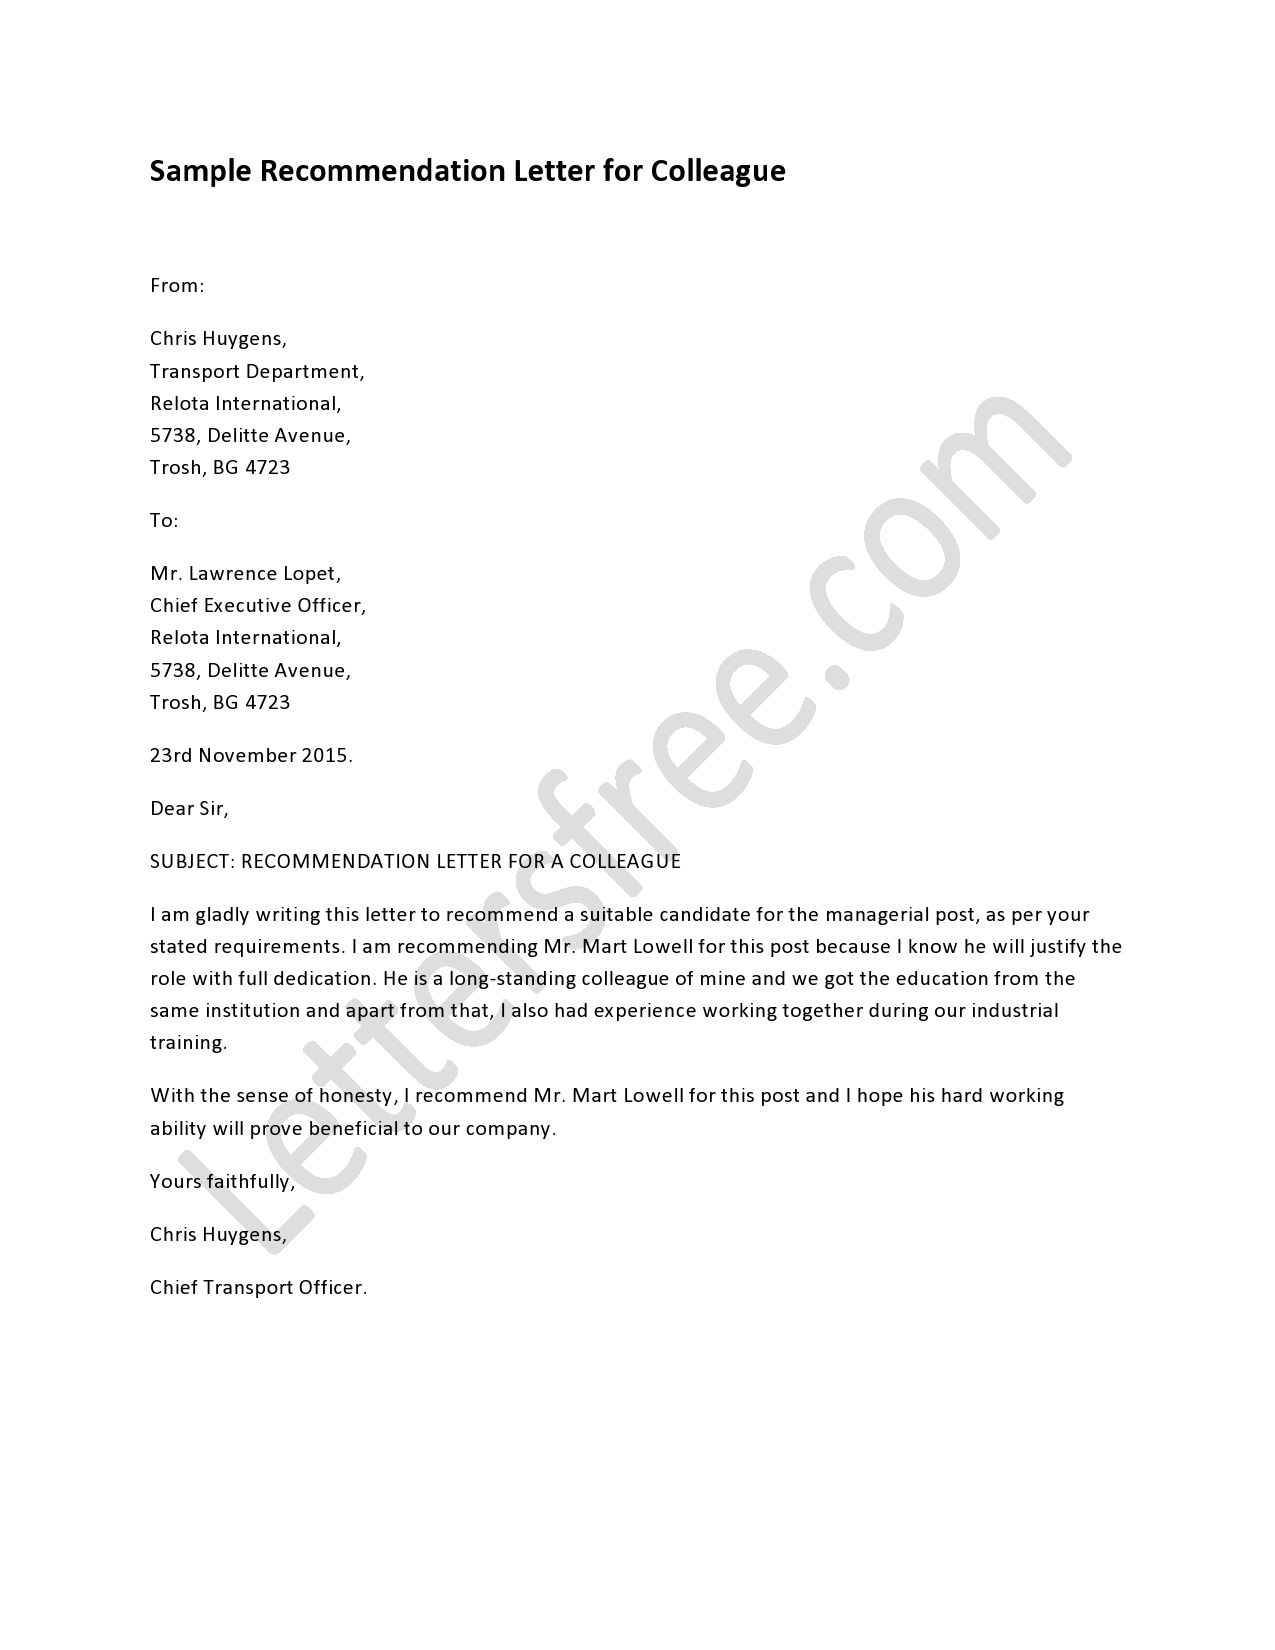 Recommendation Letter For Colleague Lettering Writing A intended for proportions 1275 X 1650